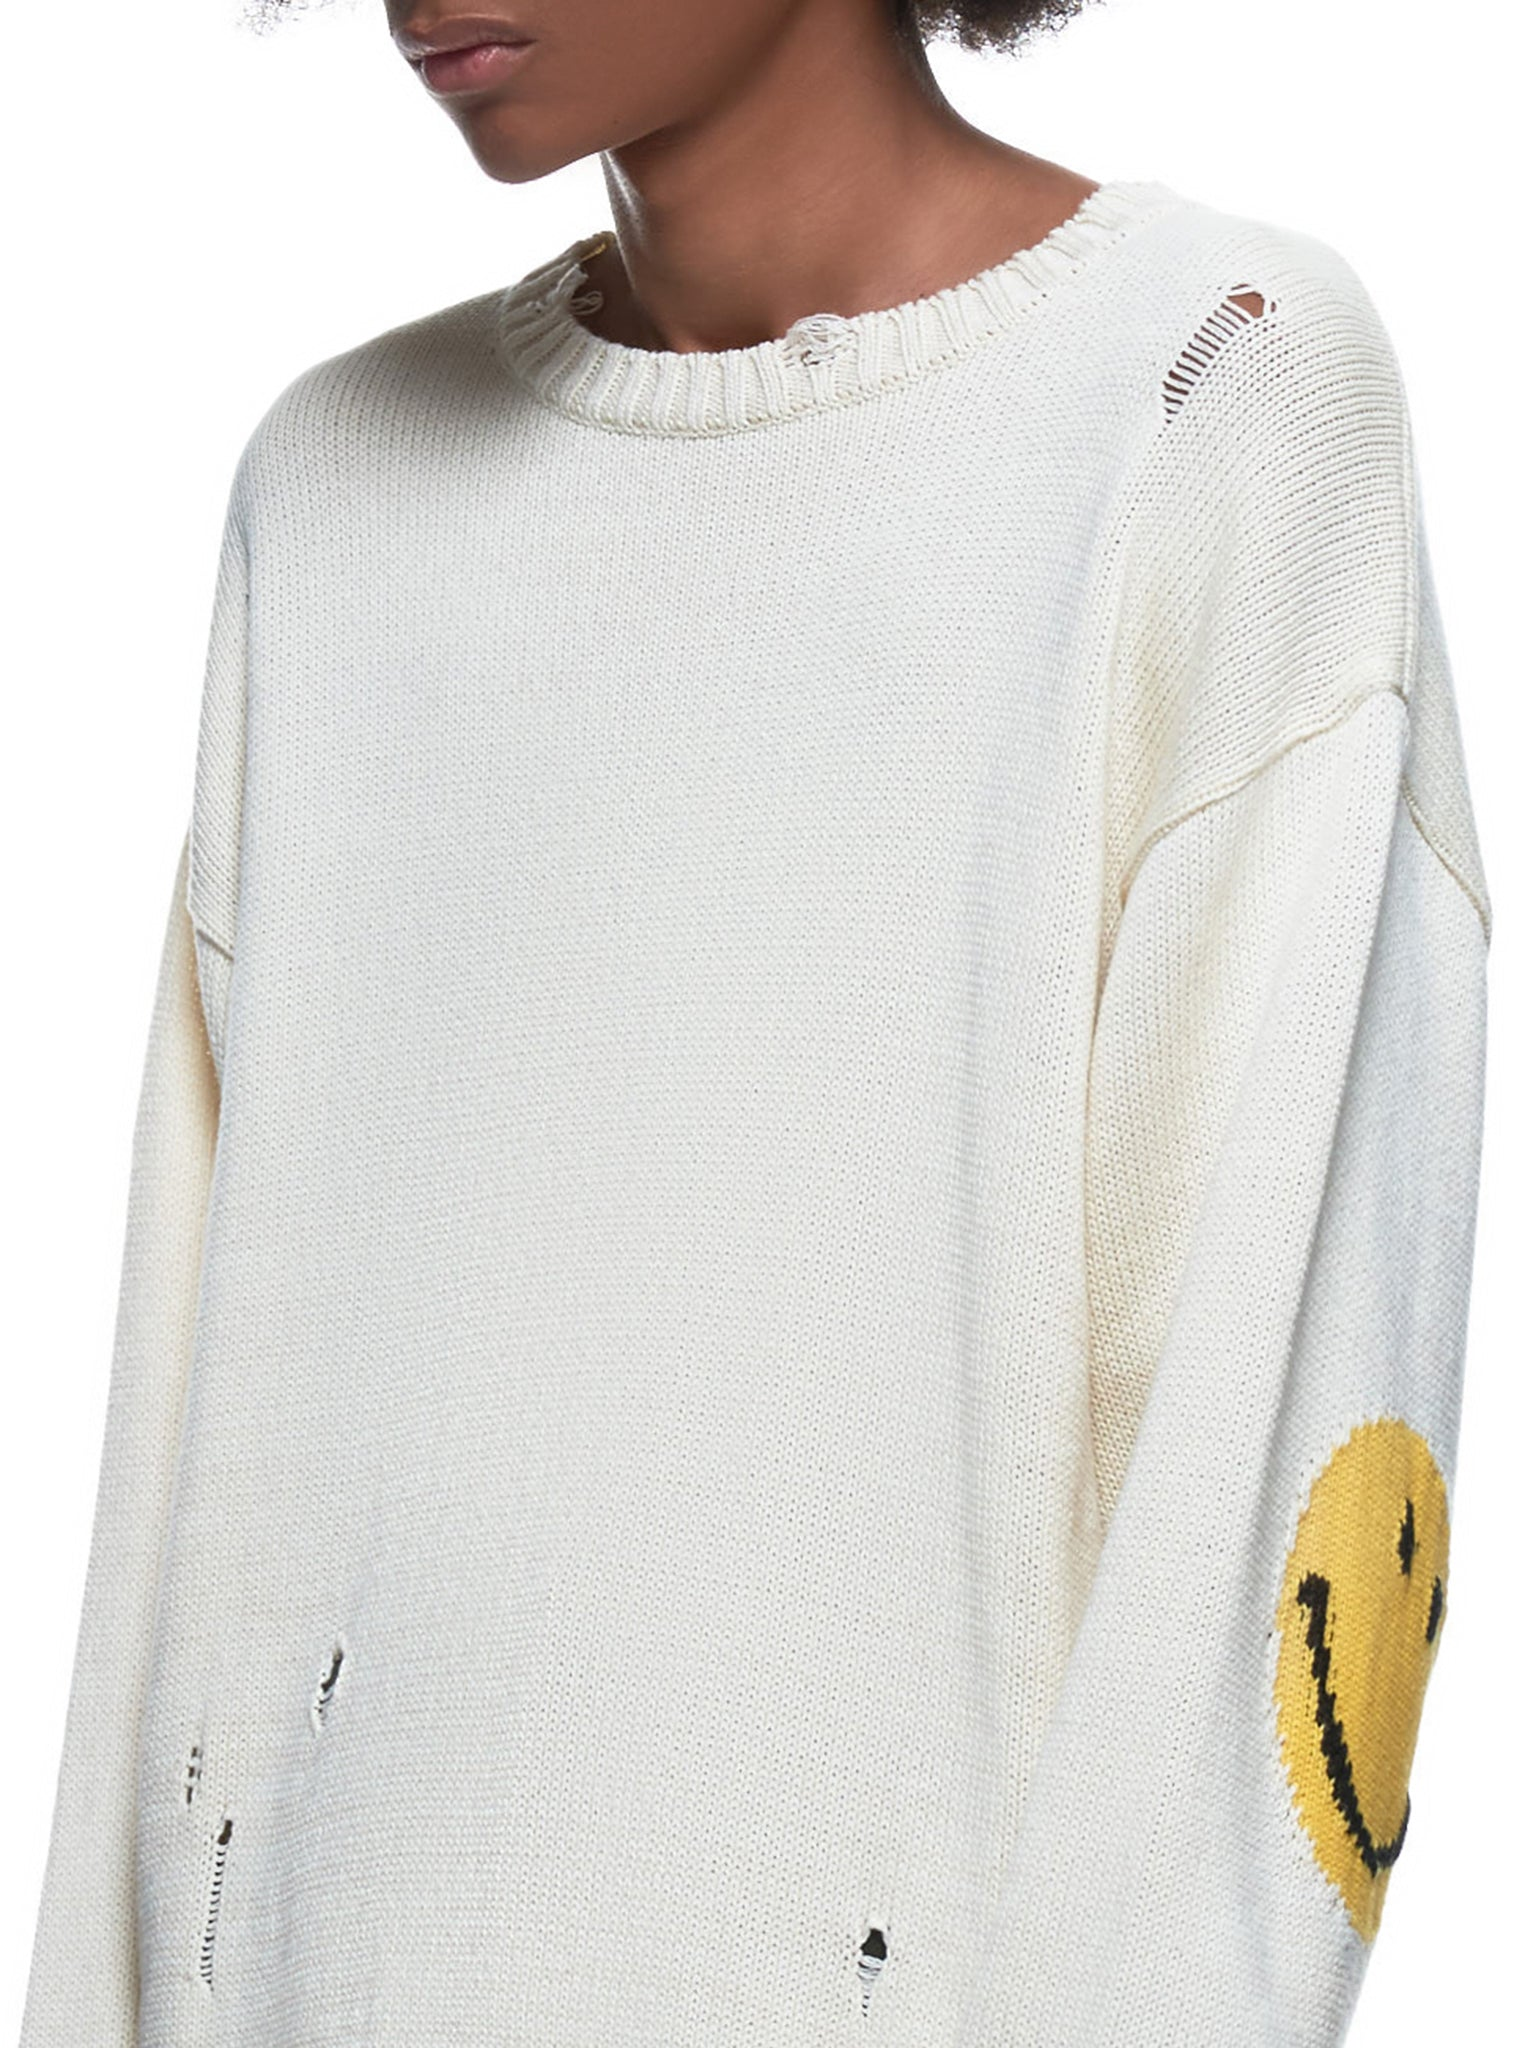 Distressed Knitted Graphic Arm Pullover (K2003KN021-NATURAL)